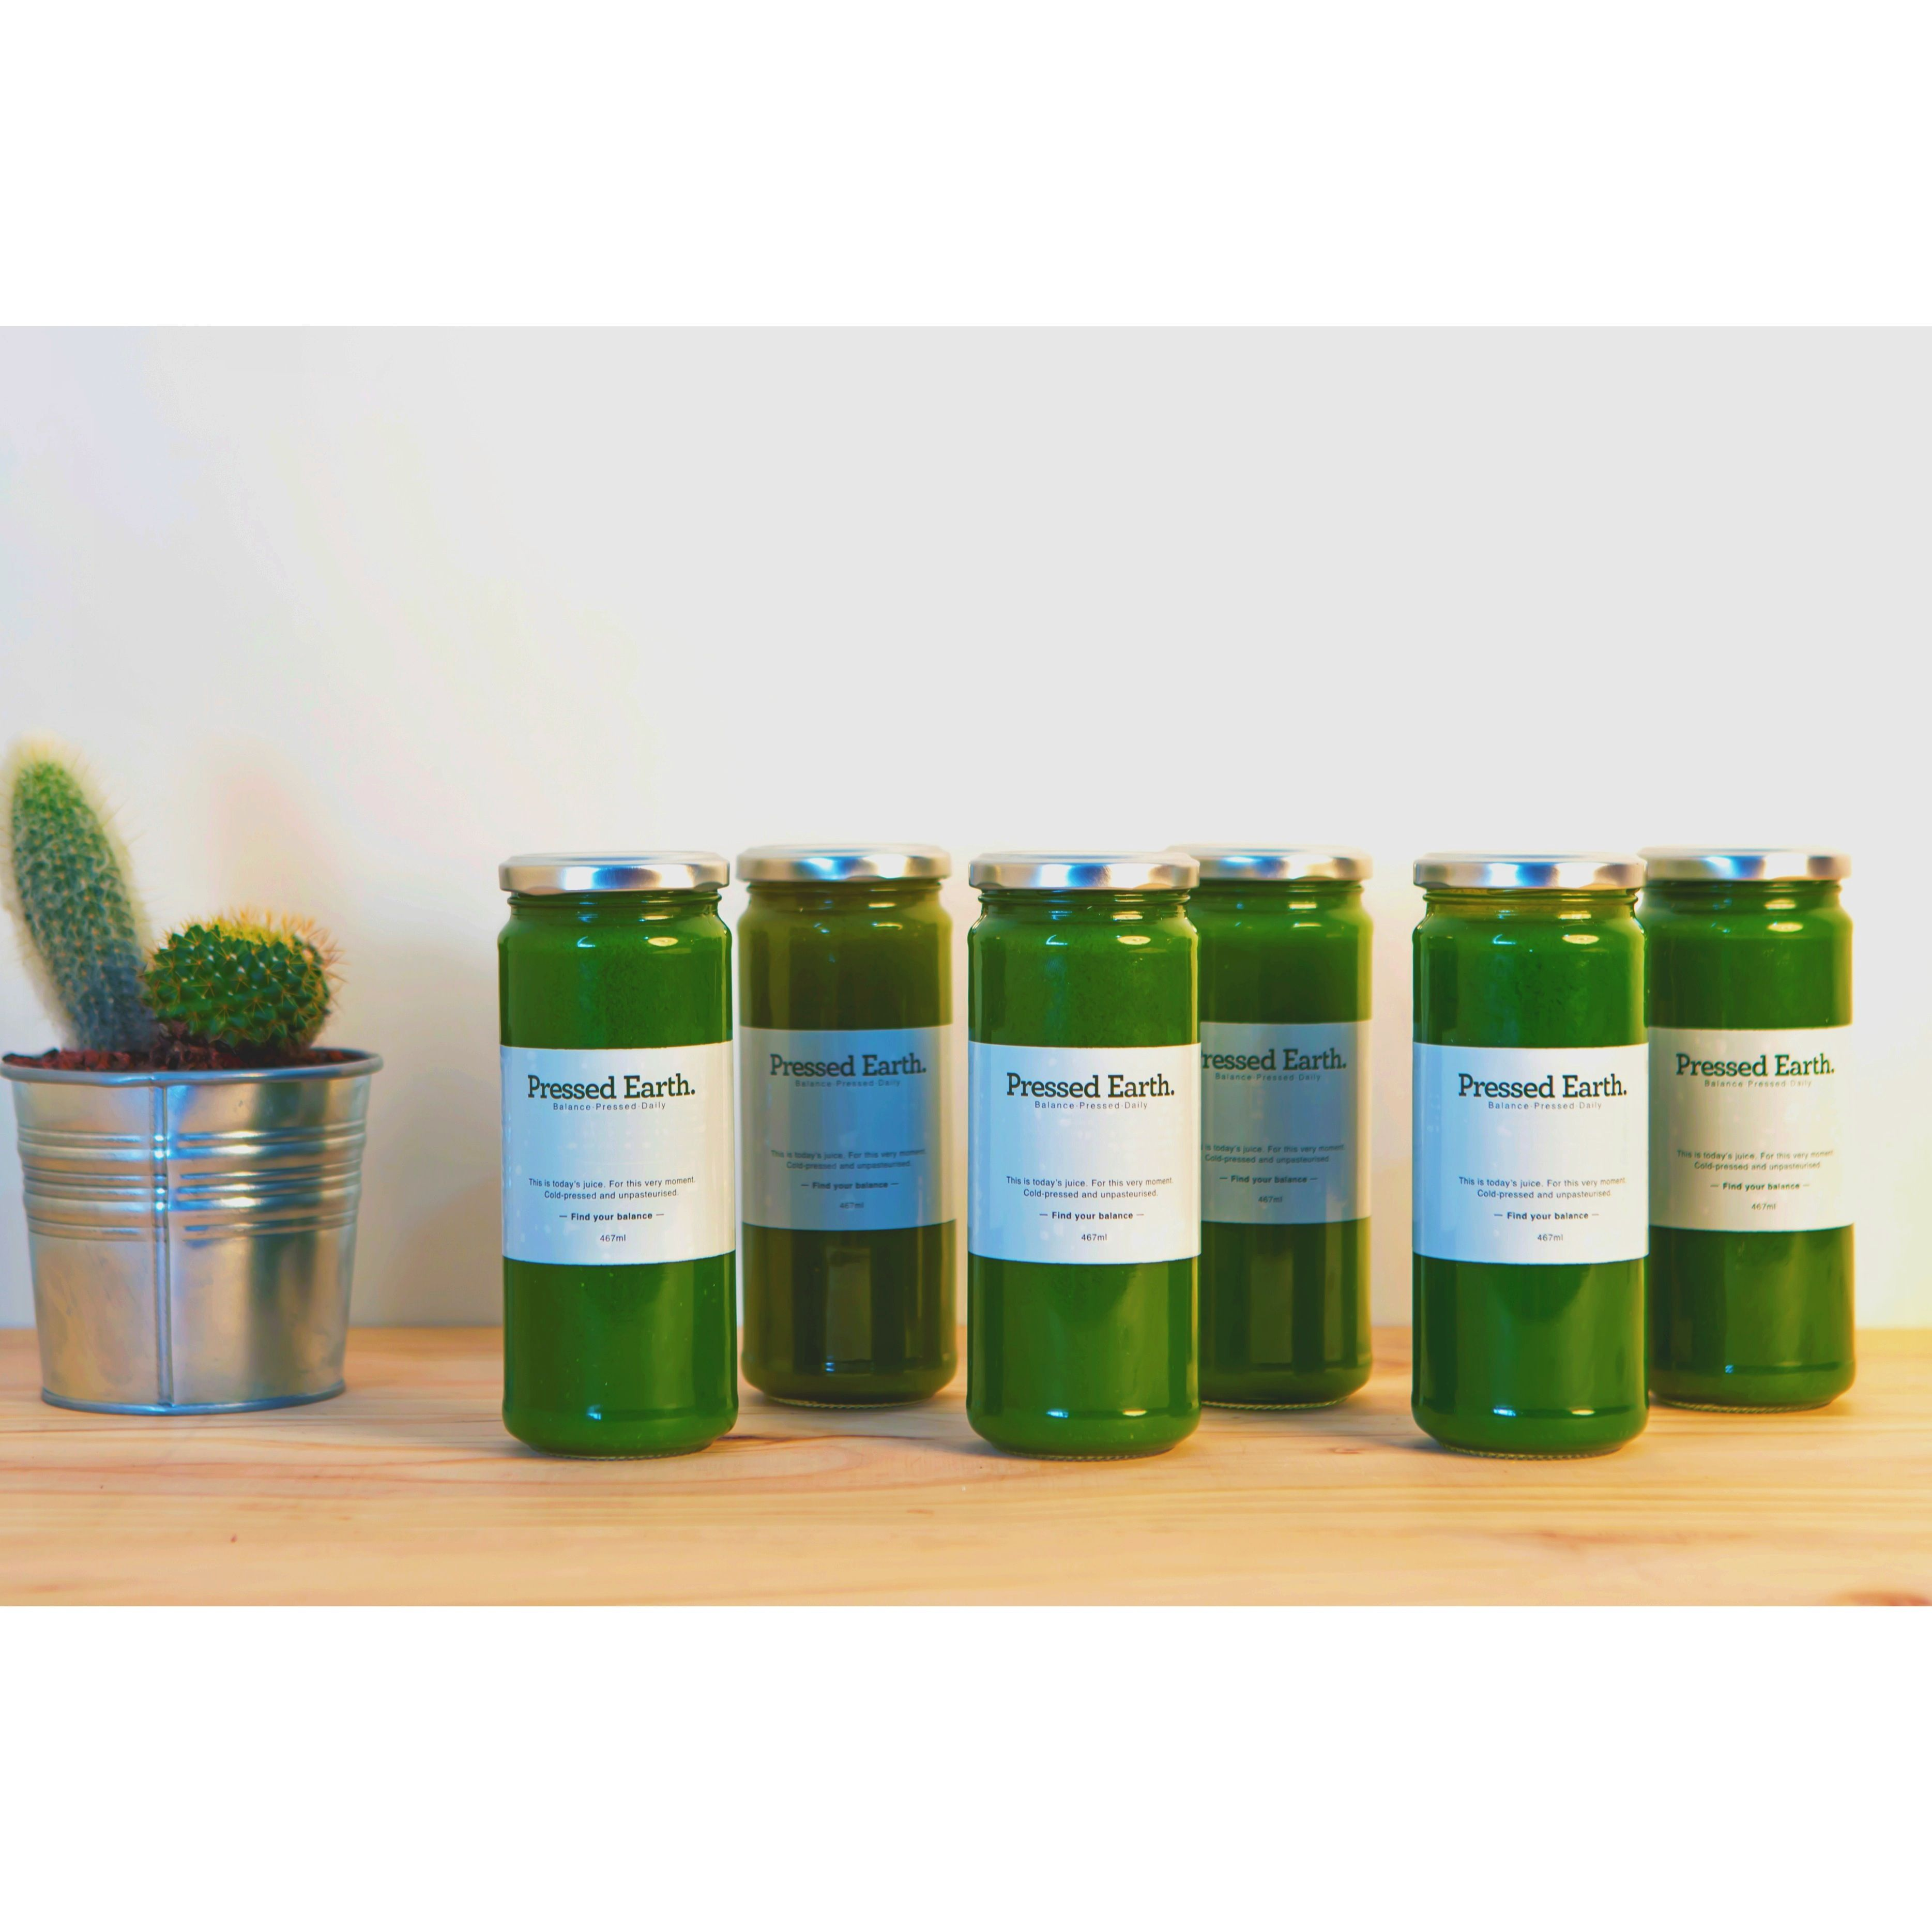 Pressed earth bottle packaging cold pressed juice company in cold pressed juice company in perth western australia malvernweather Images